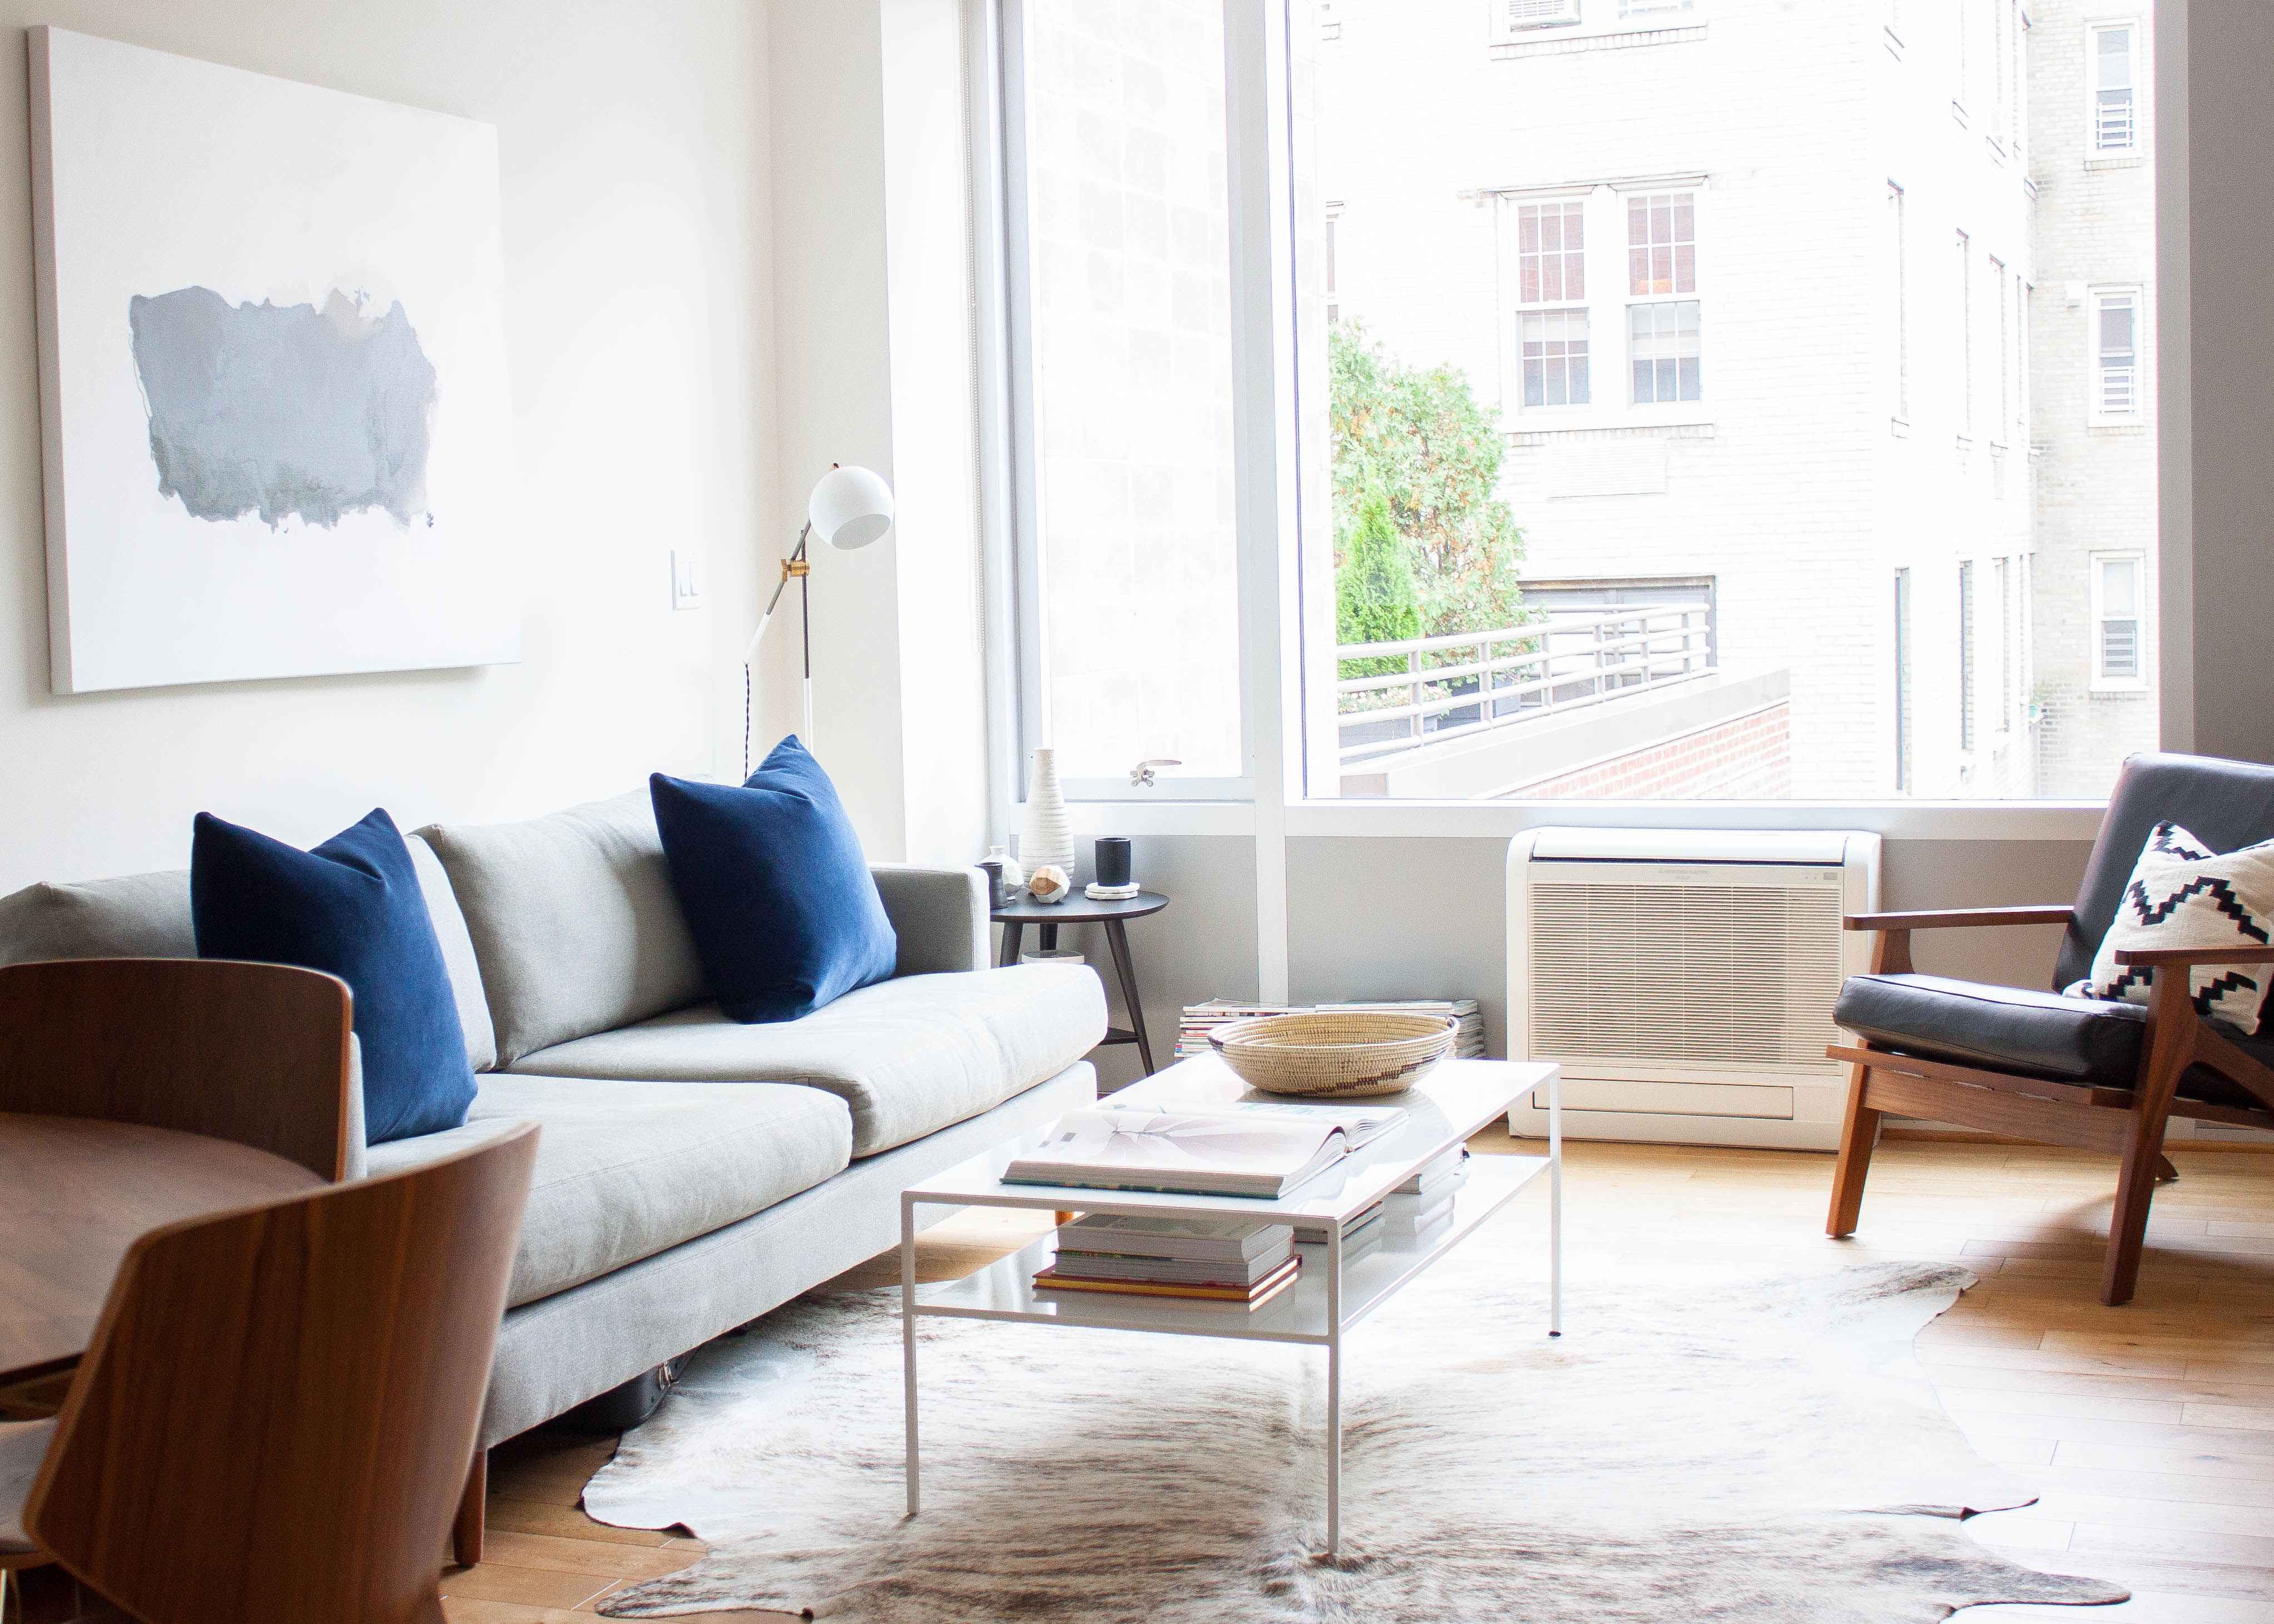 small living room furniture tour: a nyc coupleu0027s minimalist retreat from hectic city life GBEYZTM